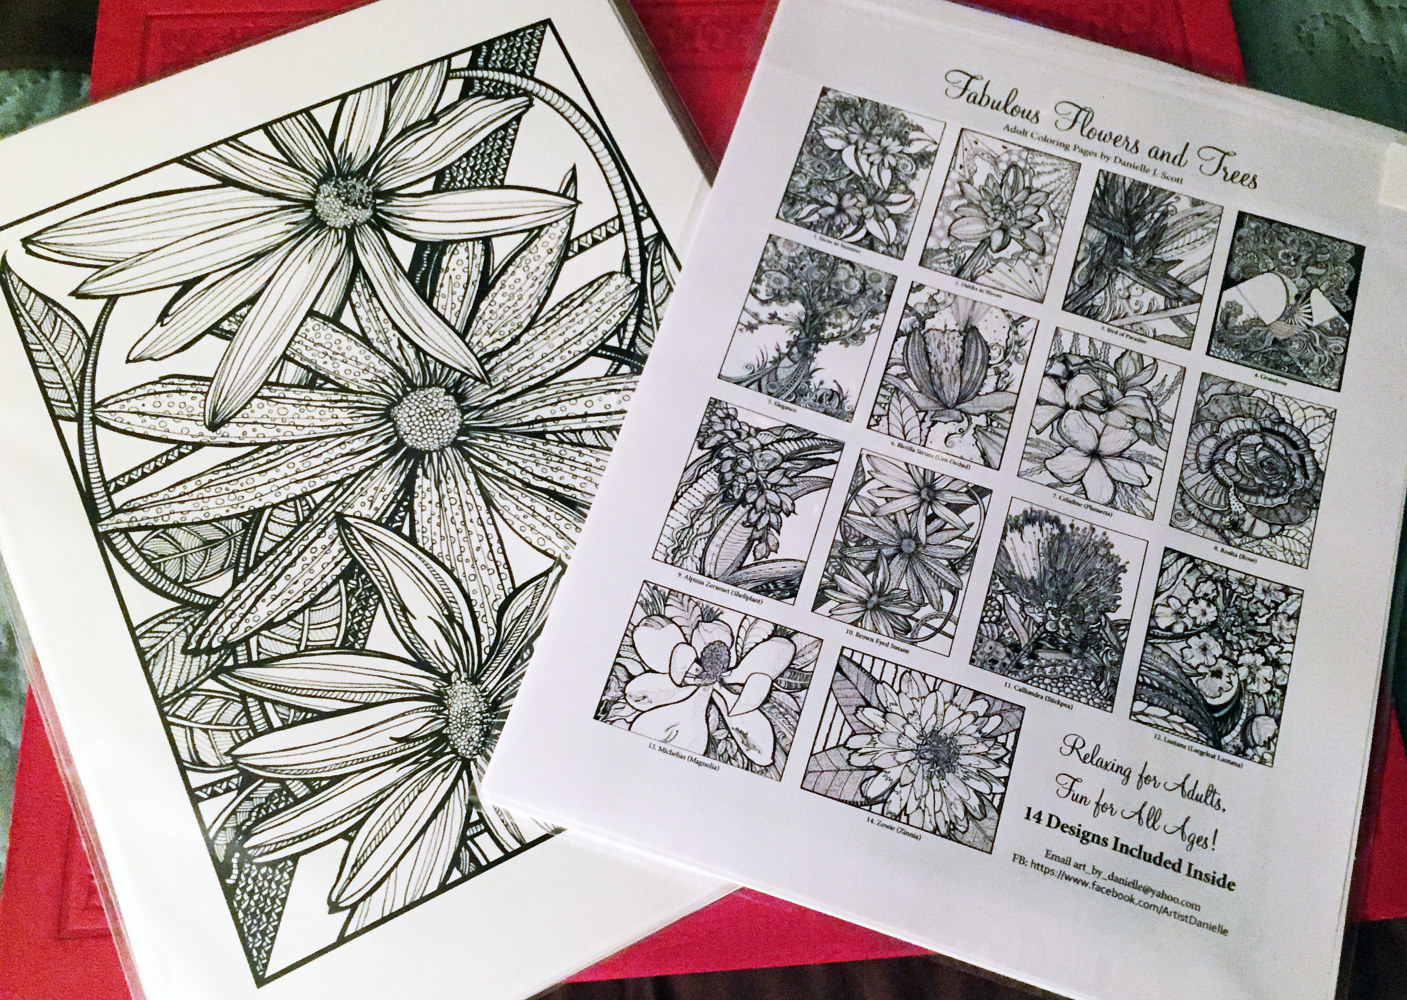 Drawing Fabulous Flowers & Trees Coloring Book for Adults, Vol. 1, 2nd Ed. by Danielle Scott